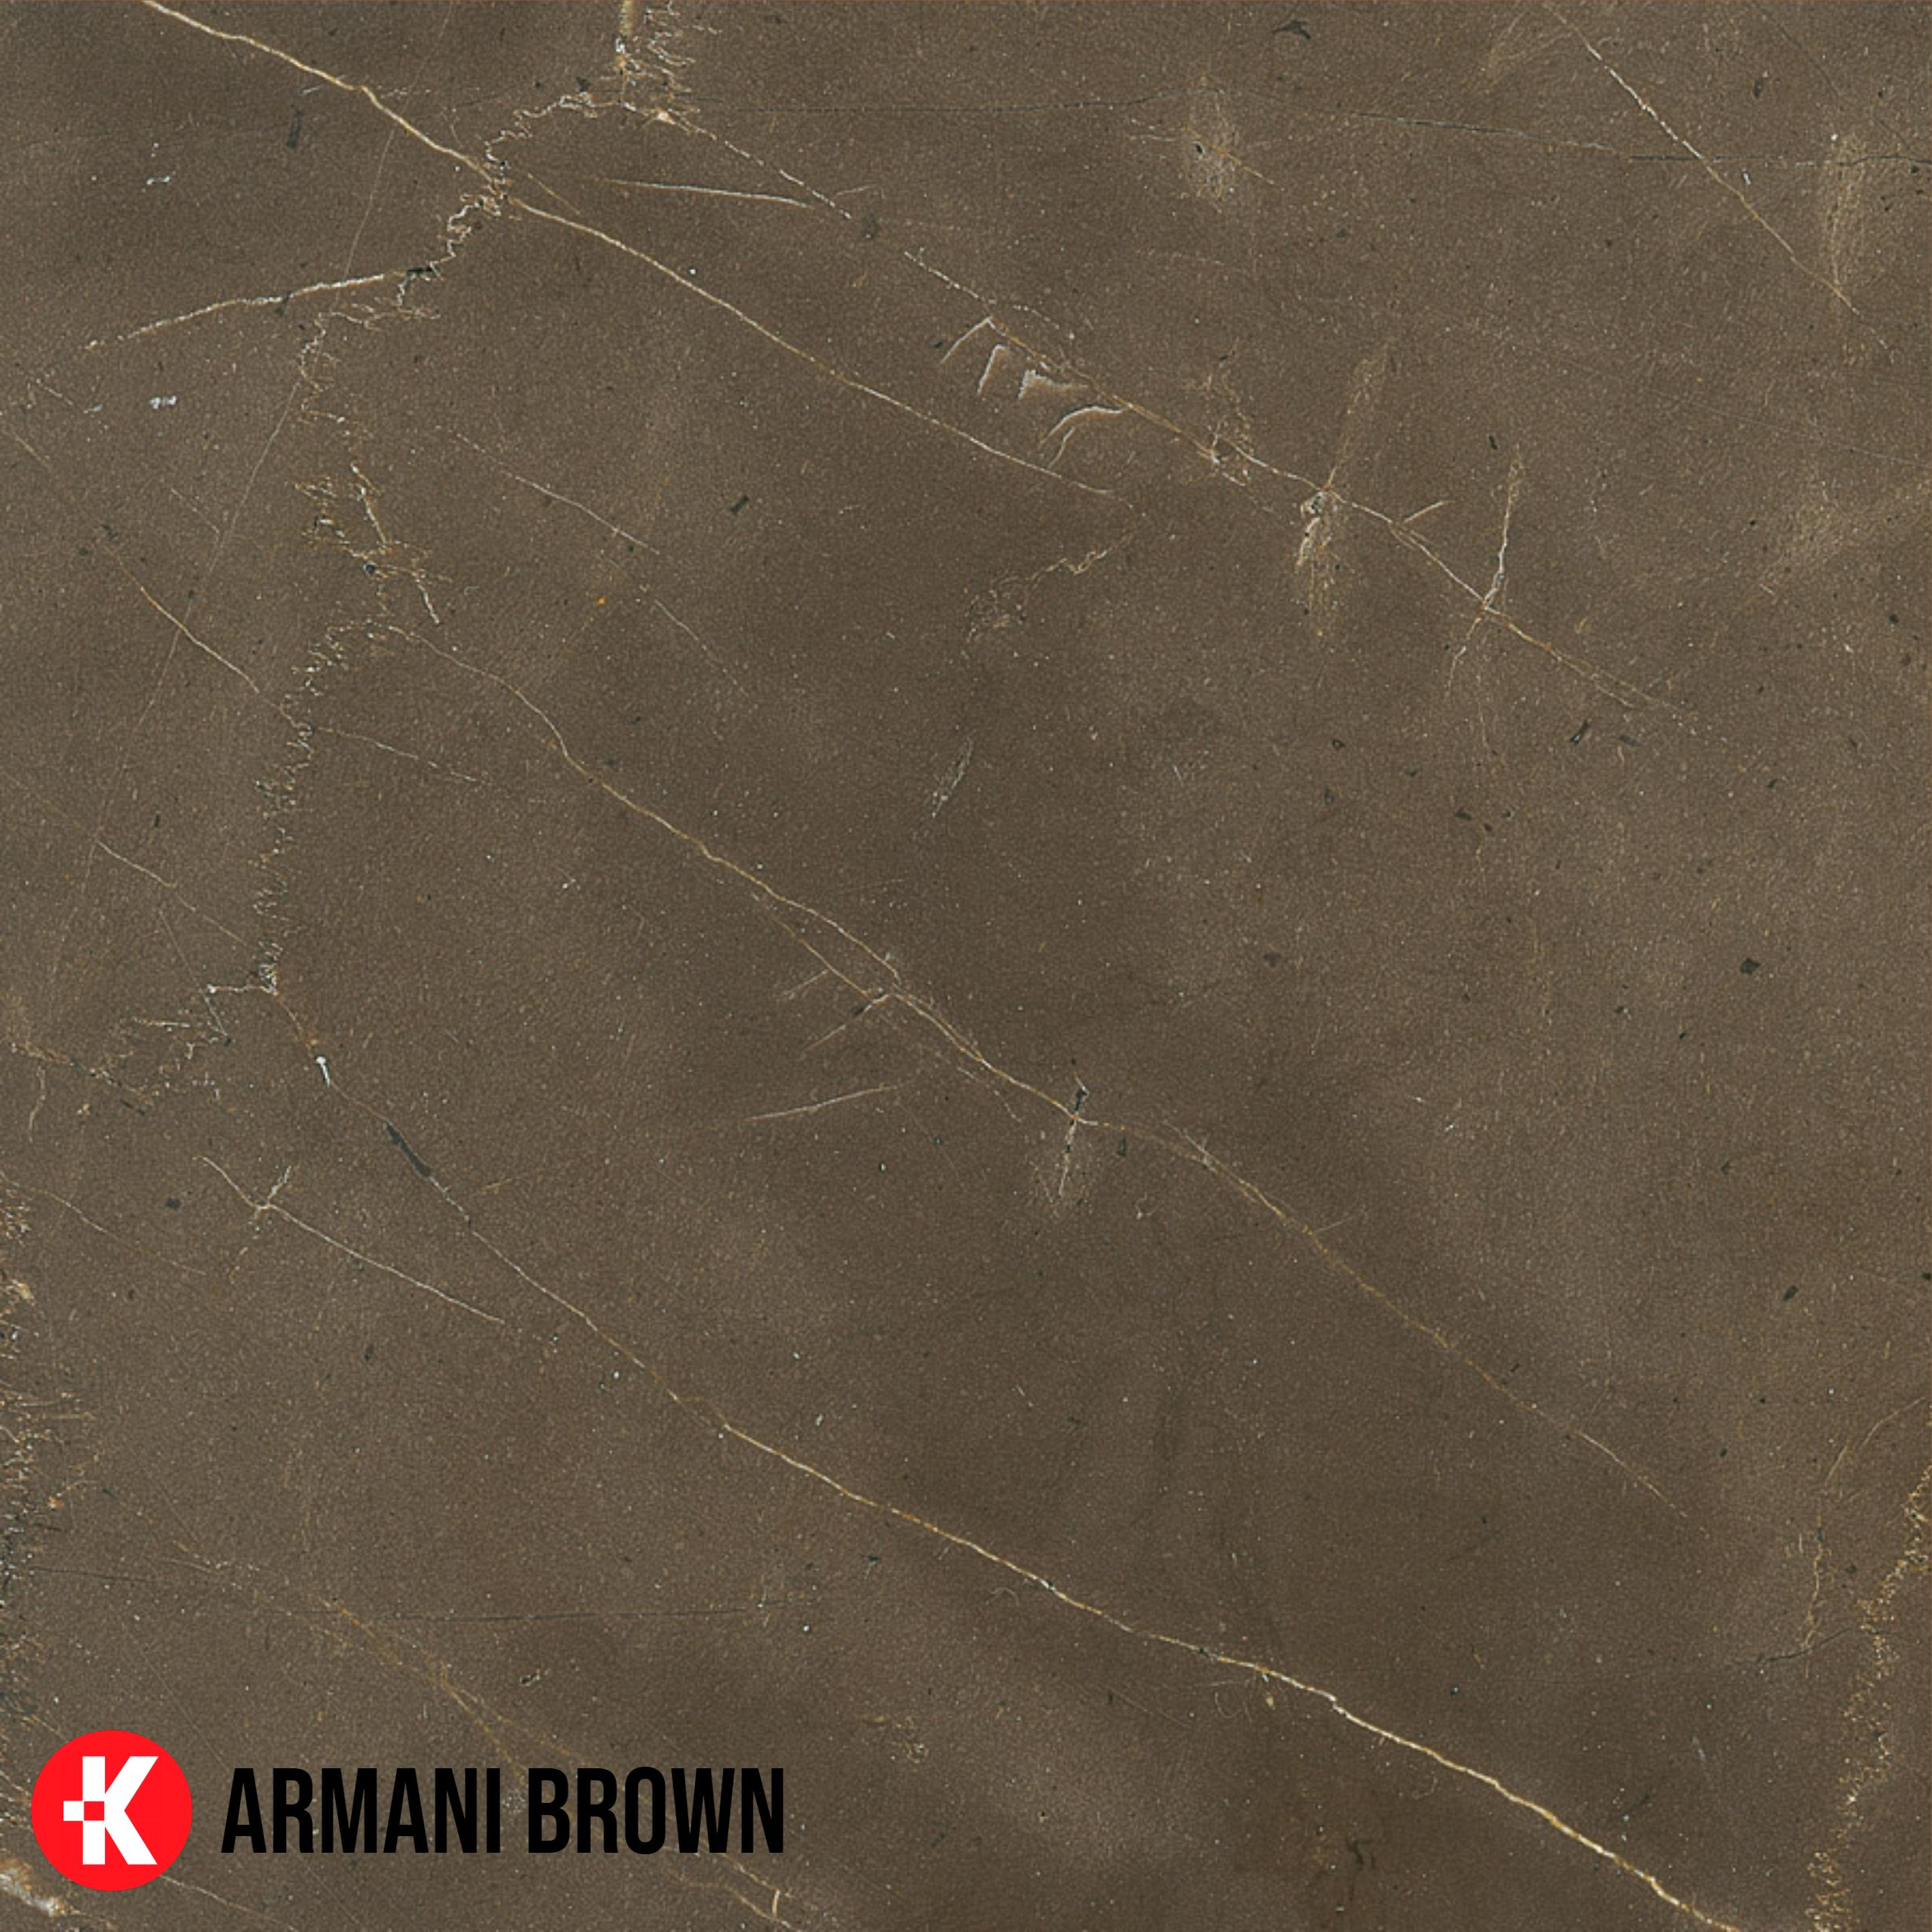 Armani Brown Marble Marble Texture Brown Texture Textured Walls